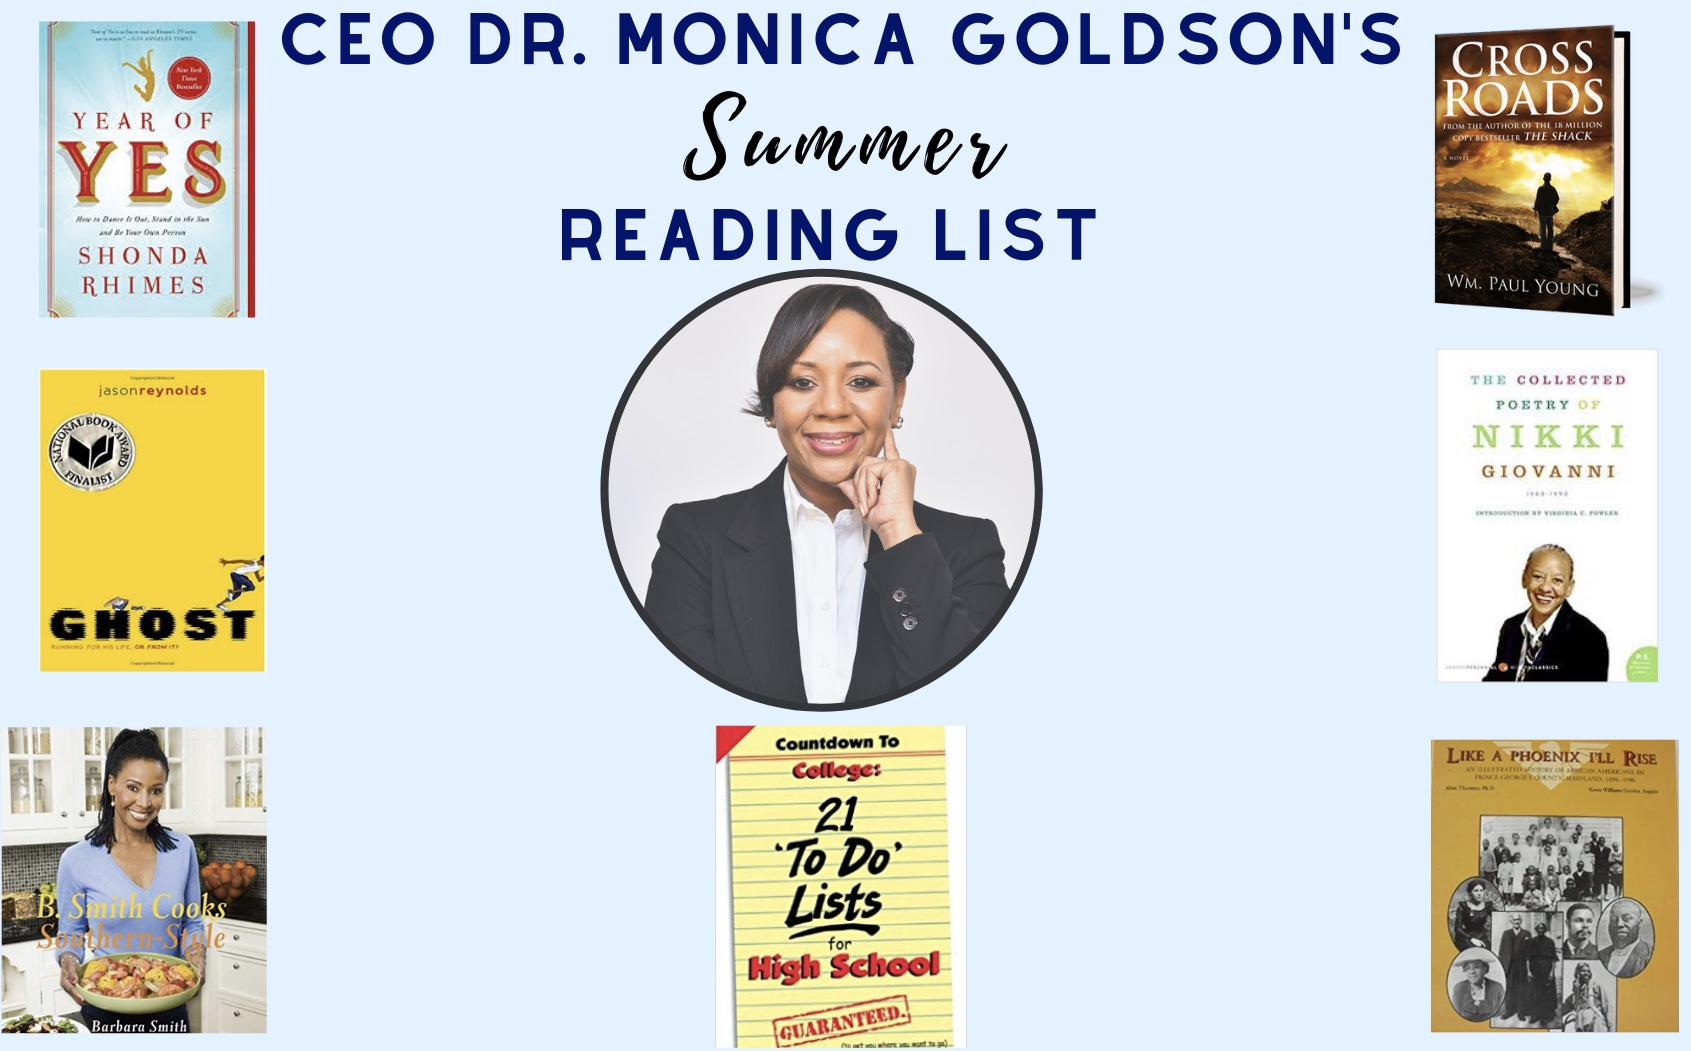 Goldson Summer Reading Picks 2019_